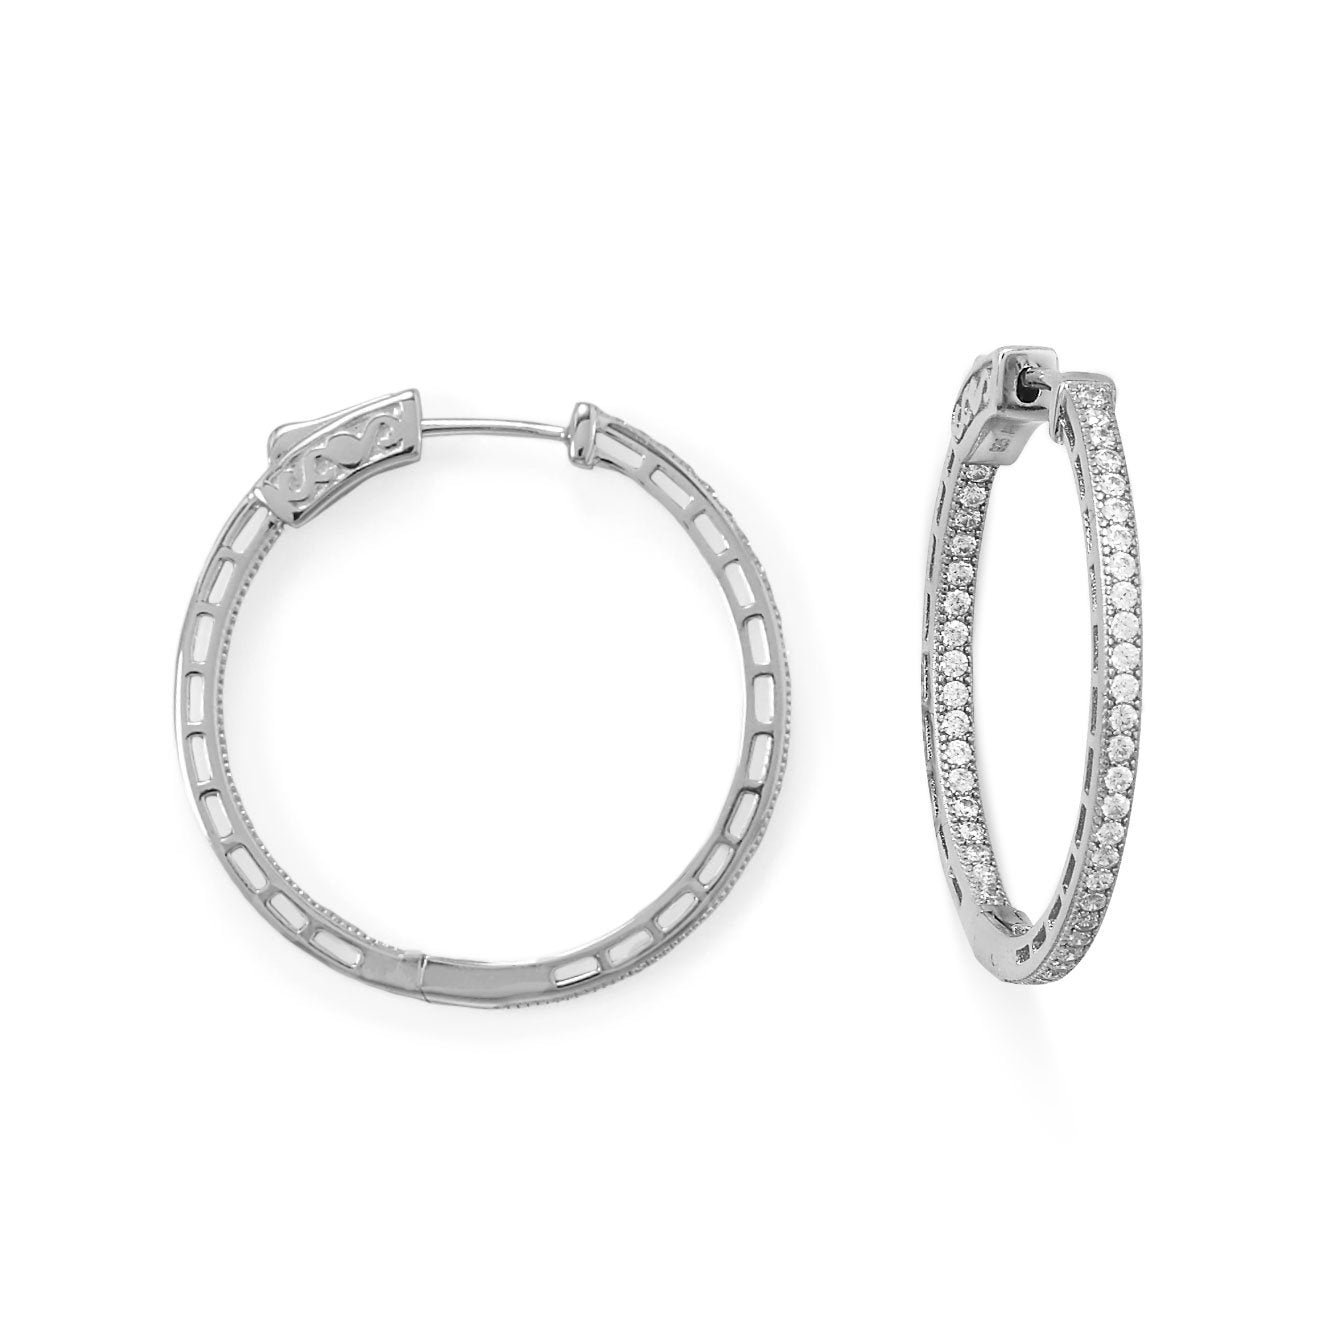 Rhodium Plated Round In/Out CZ Hoop Earrings at 3 Barn Swallows, $100